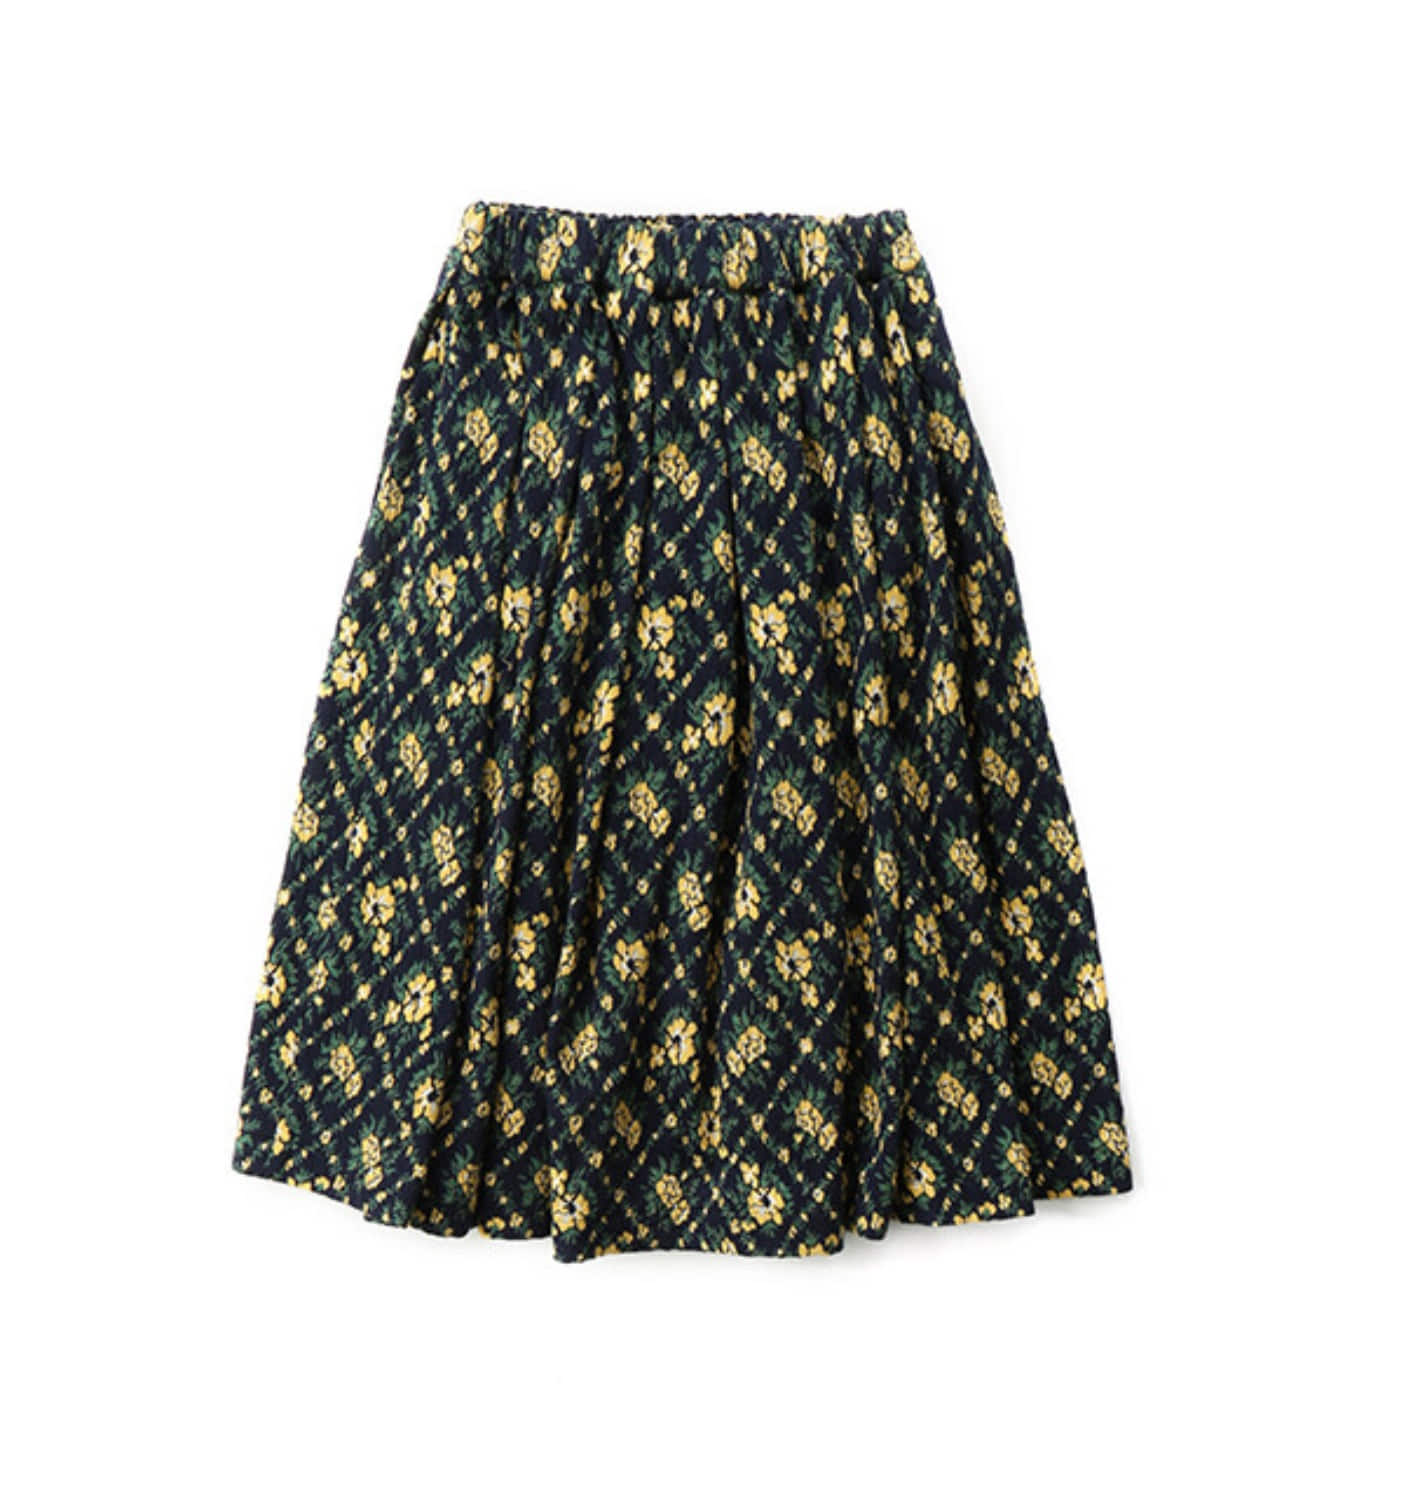 LAYLA A-LINE SKIRT FLORAL NAVY (MDS07SK01)